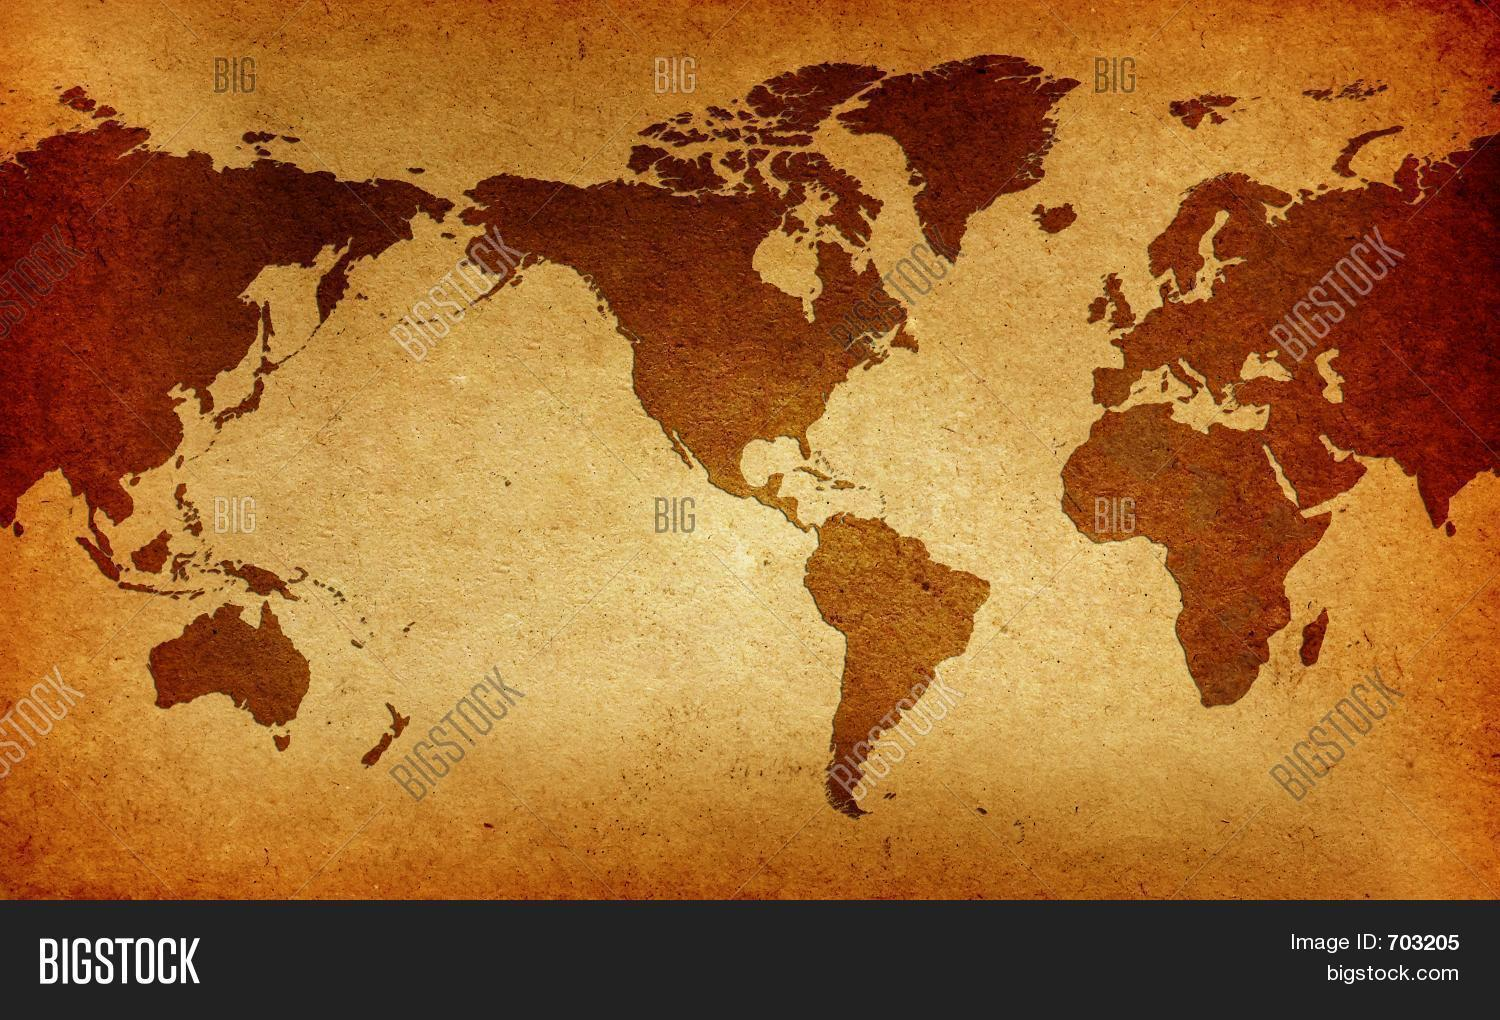 Old america centered image photo free trial bigstock old america centered world map gumiabroncs Choice Image